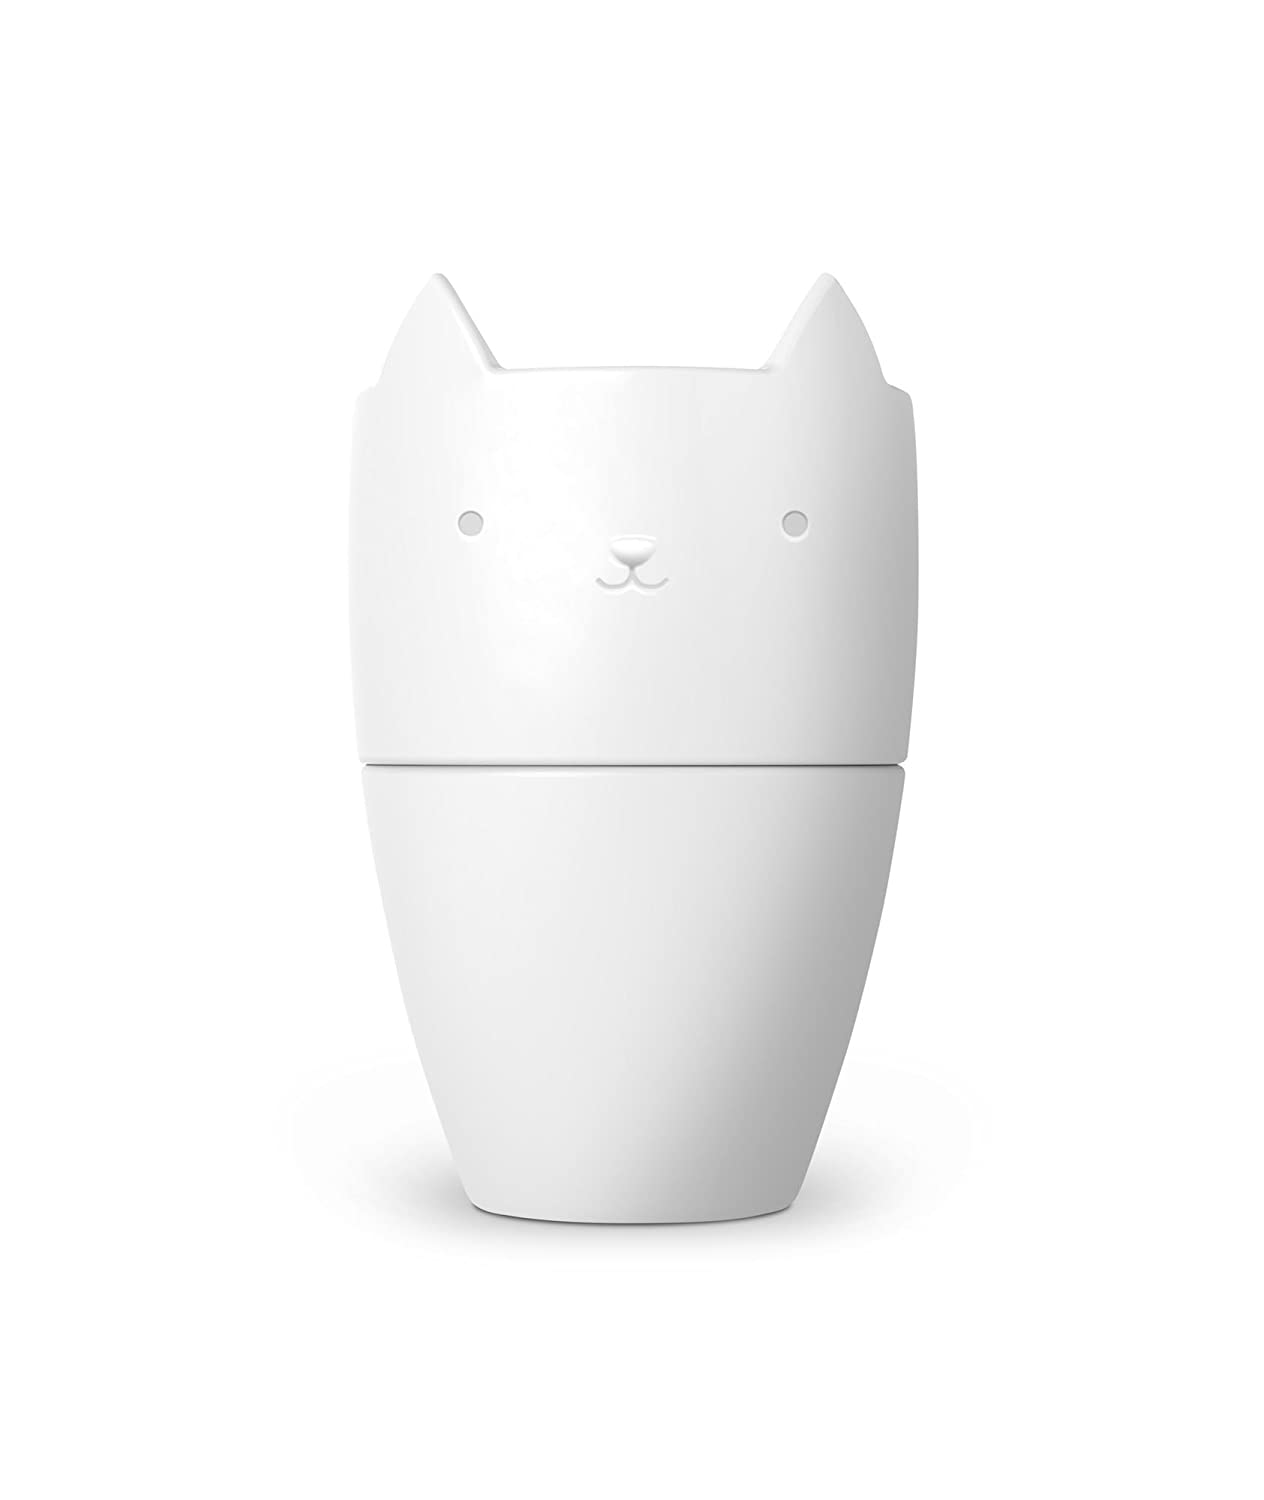 Fred 5229133 Purr Over Cat-Style Porcelain Pour Over Coffee Brewer, White